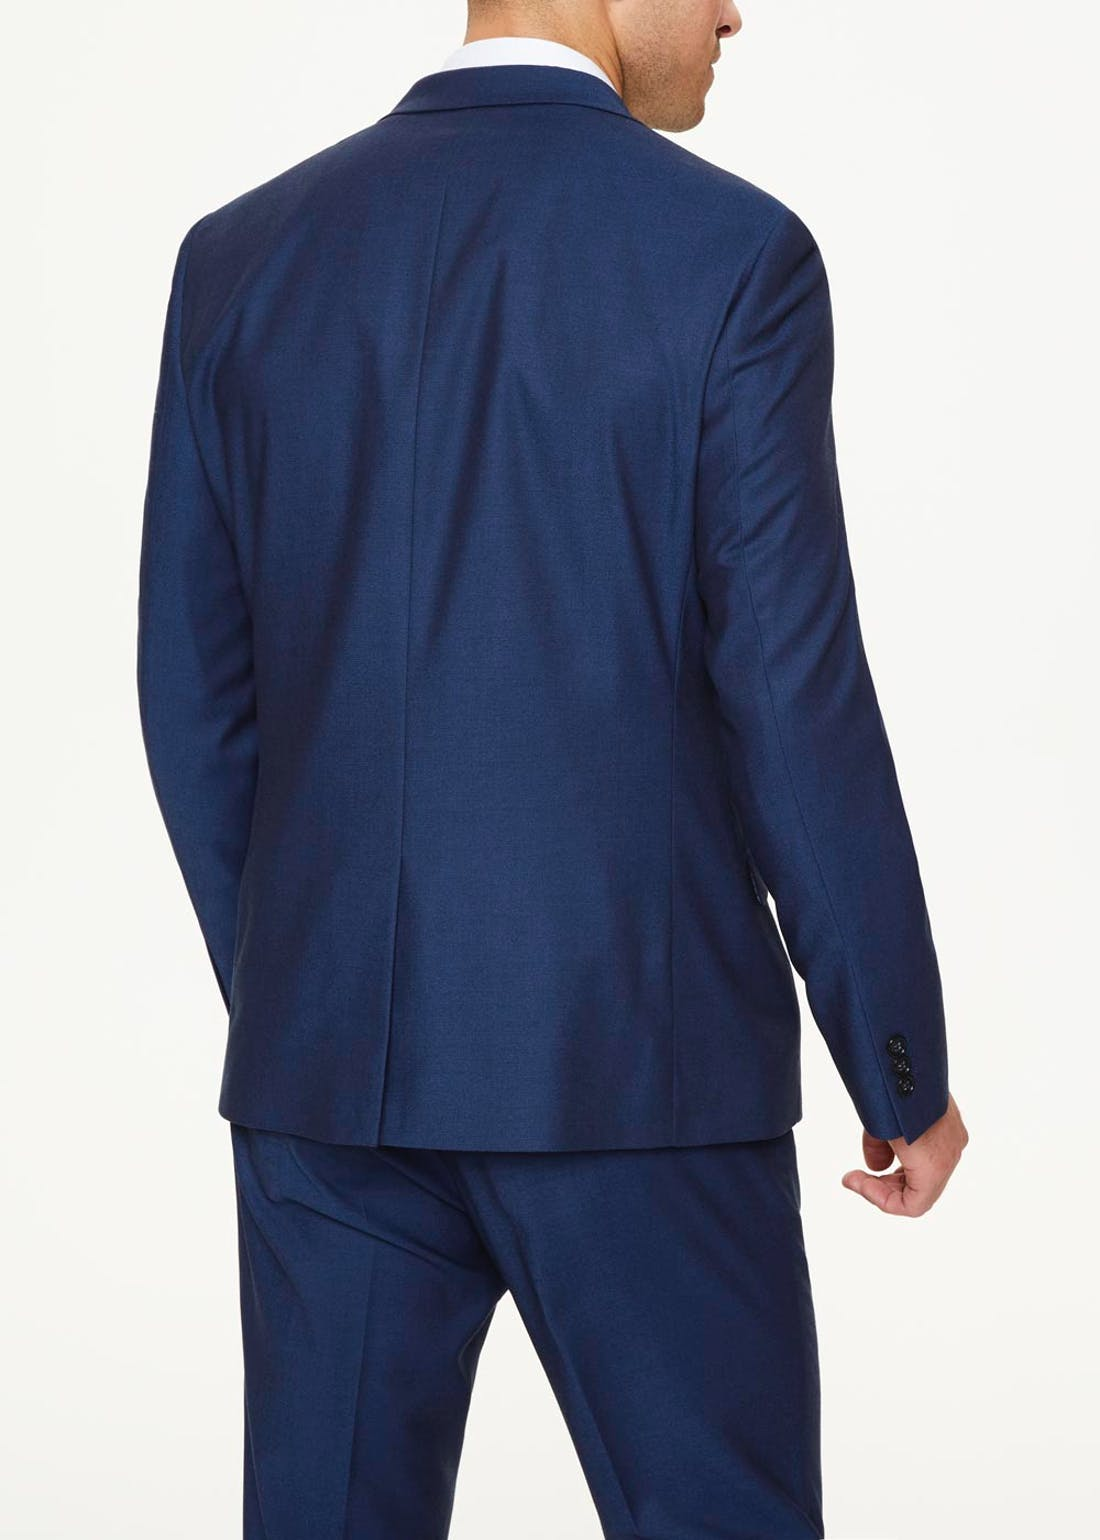 Taylor & Wright Slim Fit Kent Suit Jacket